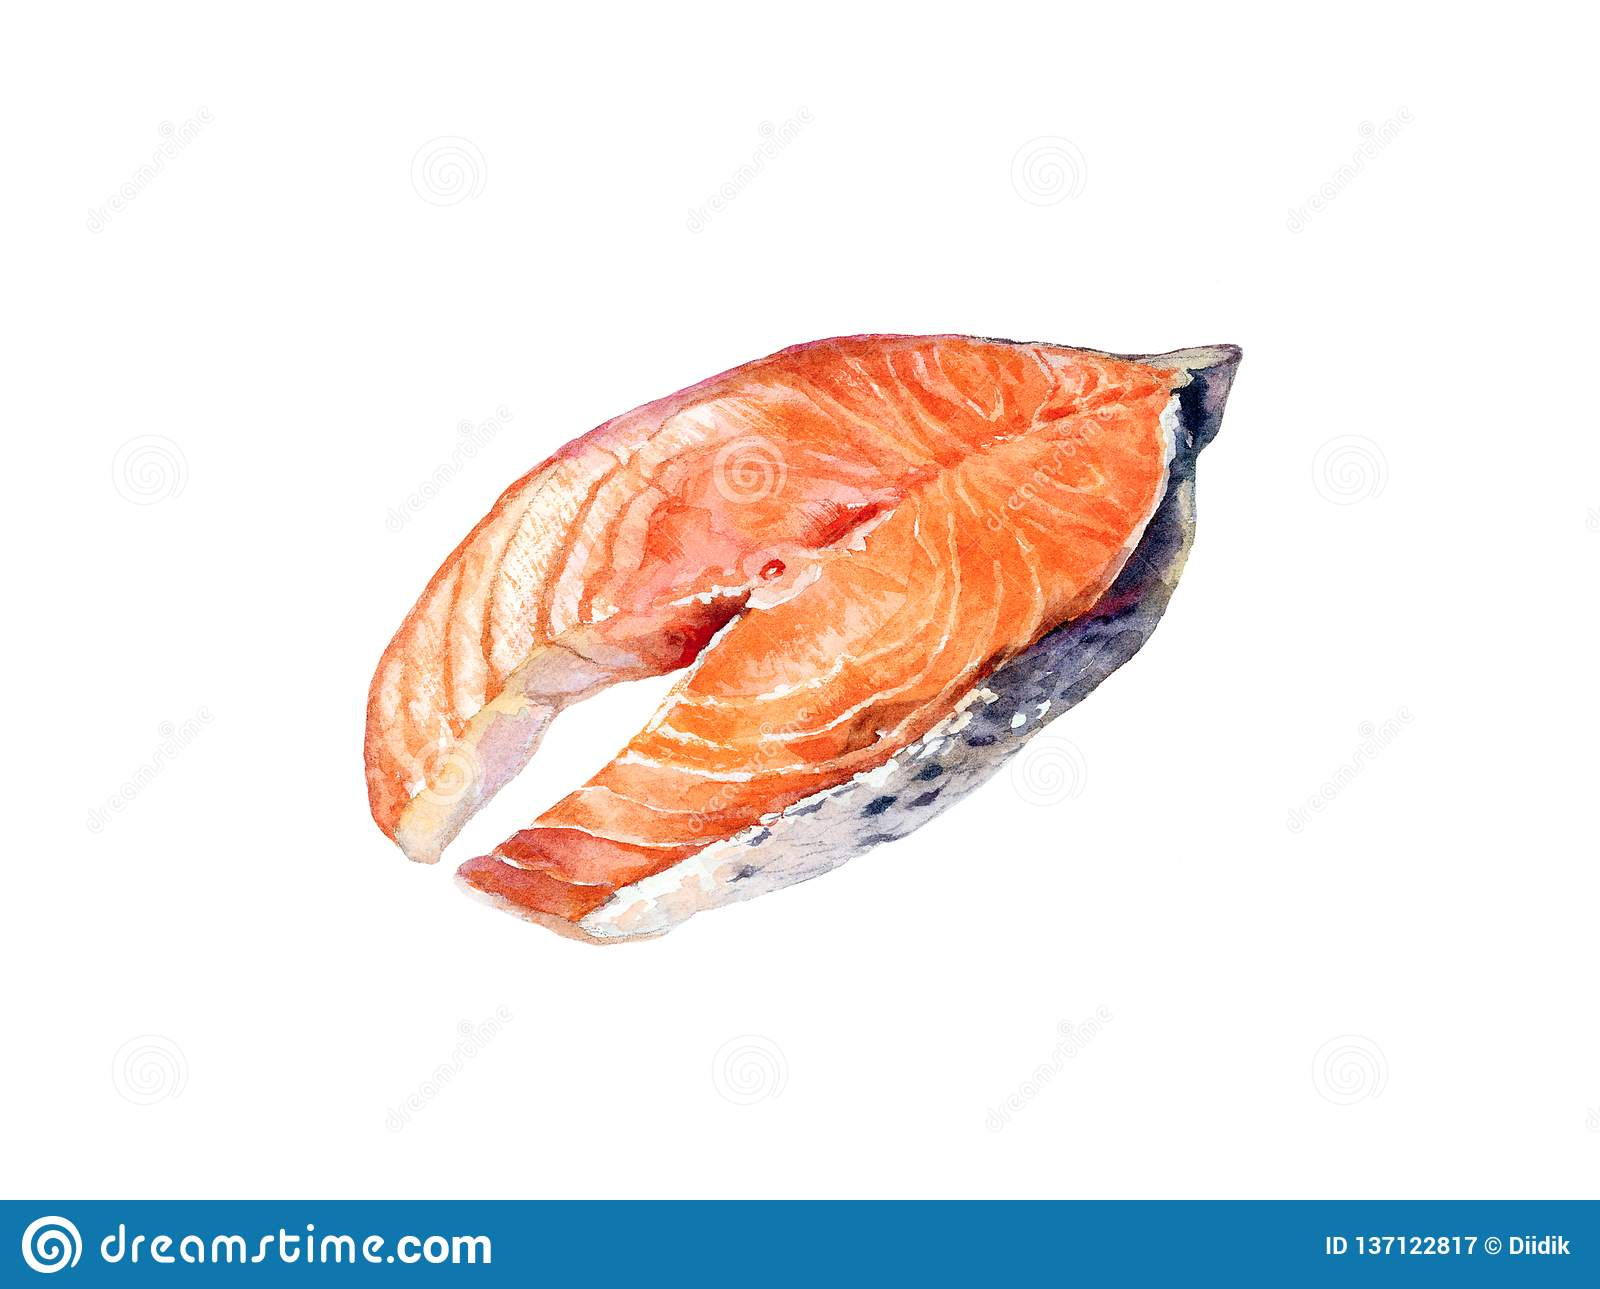 Watercolor hand drawn piece of salmon fish realistic illustration isolated on white royalty free stock photography